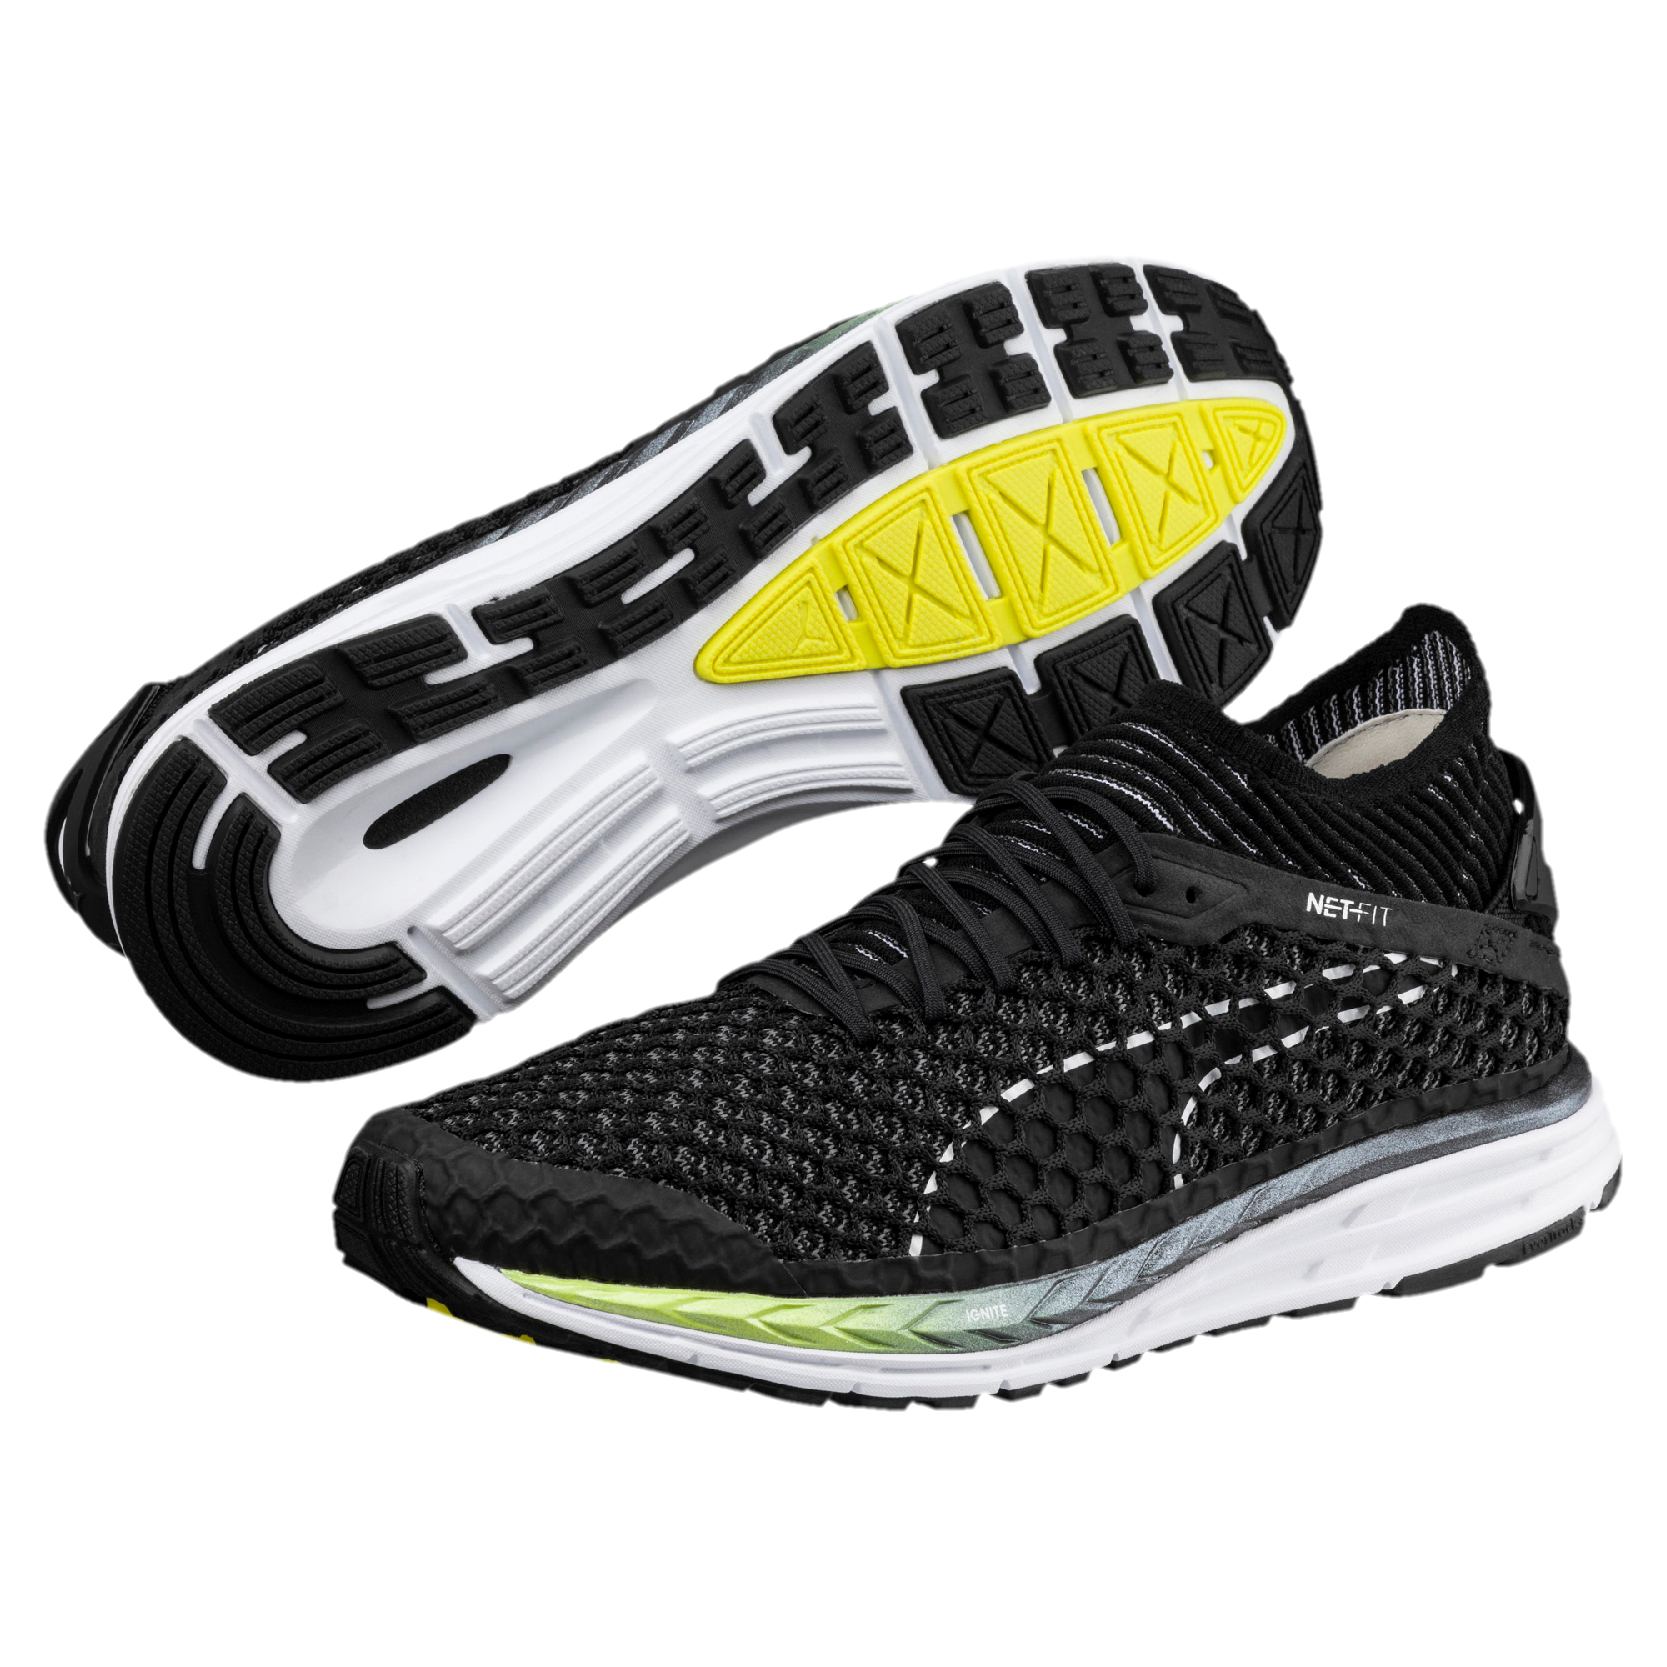 Chaussures de running | Puma | Speed Ignite Netfit 2 Shoes